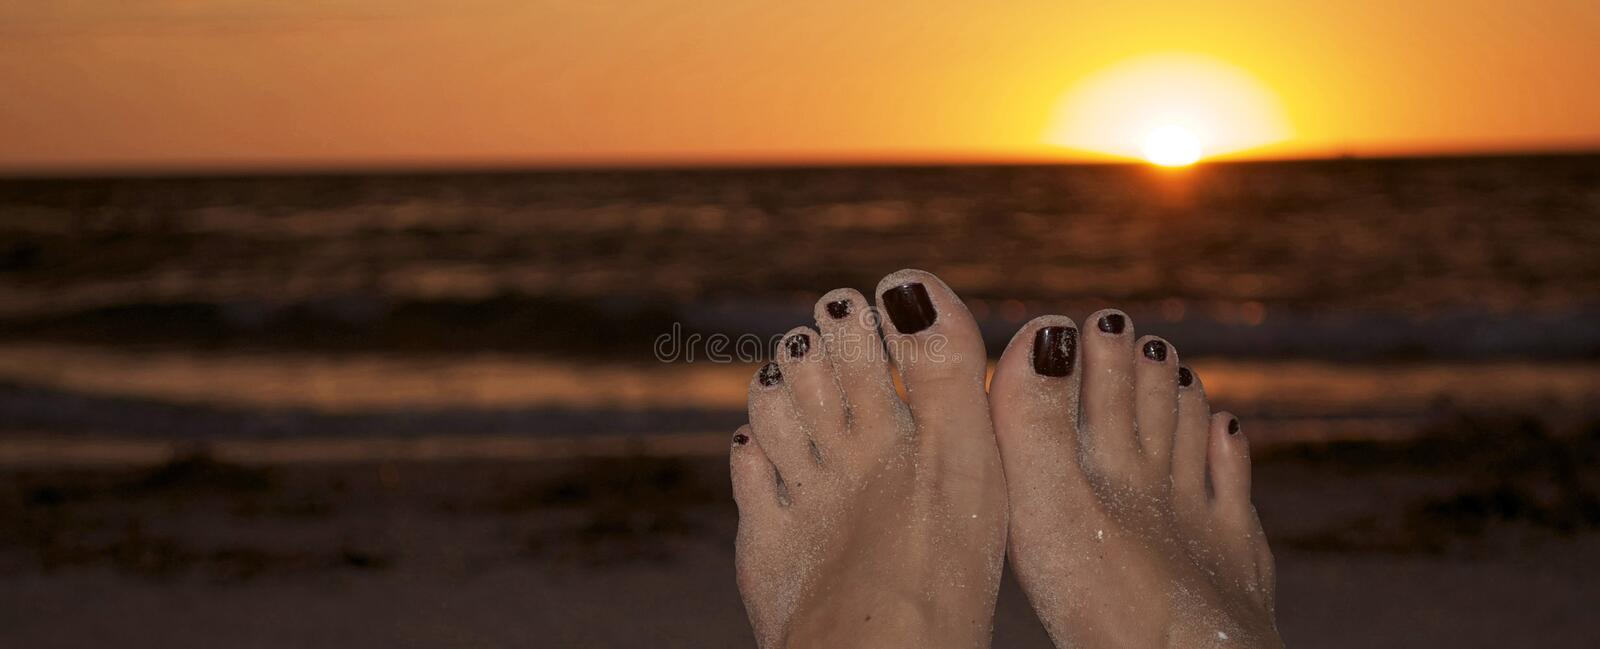 Download Relaxing on the beach stock image. Image of toes, yellow - 34635627